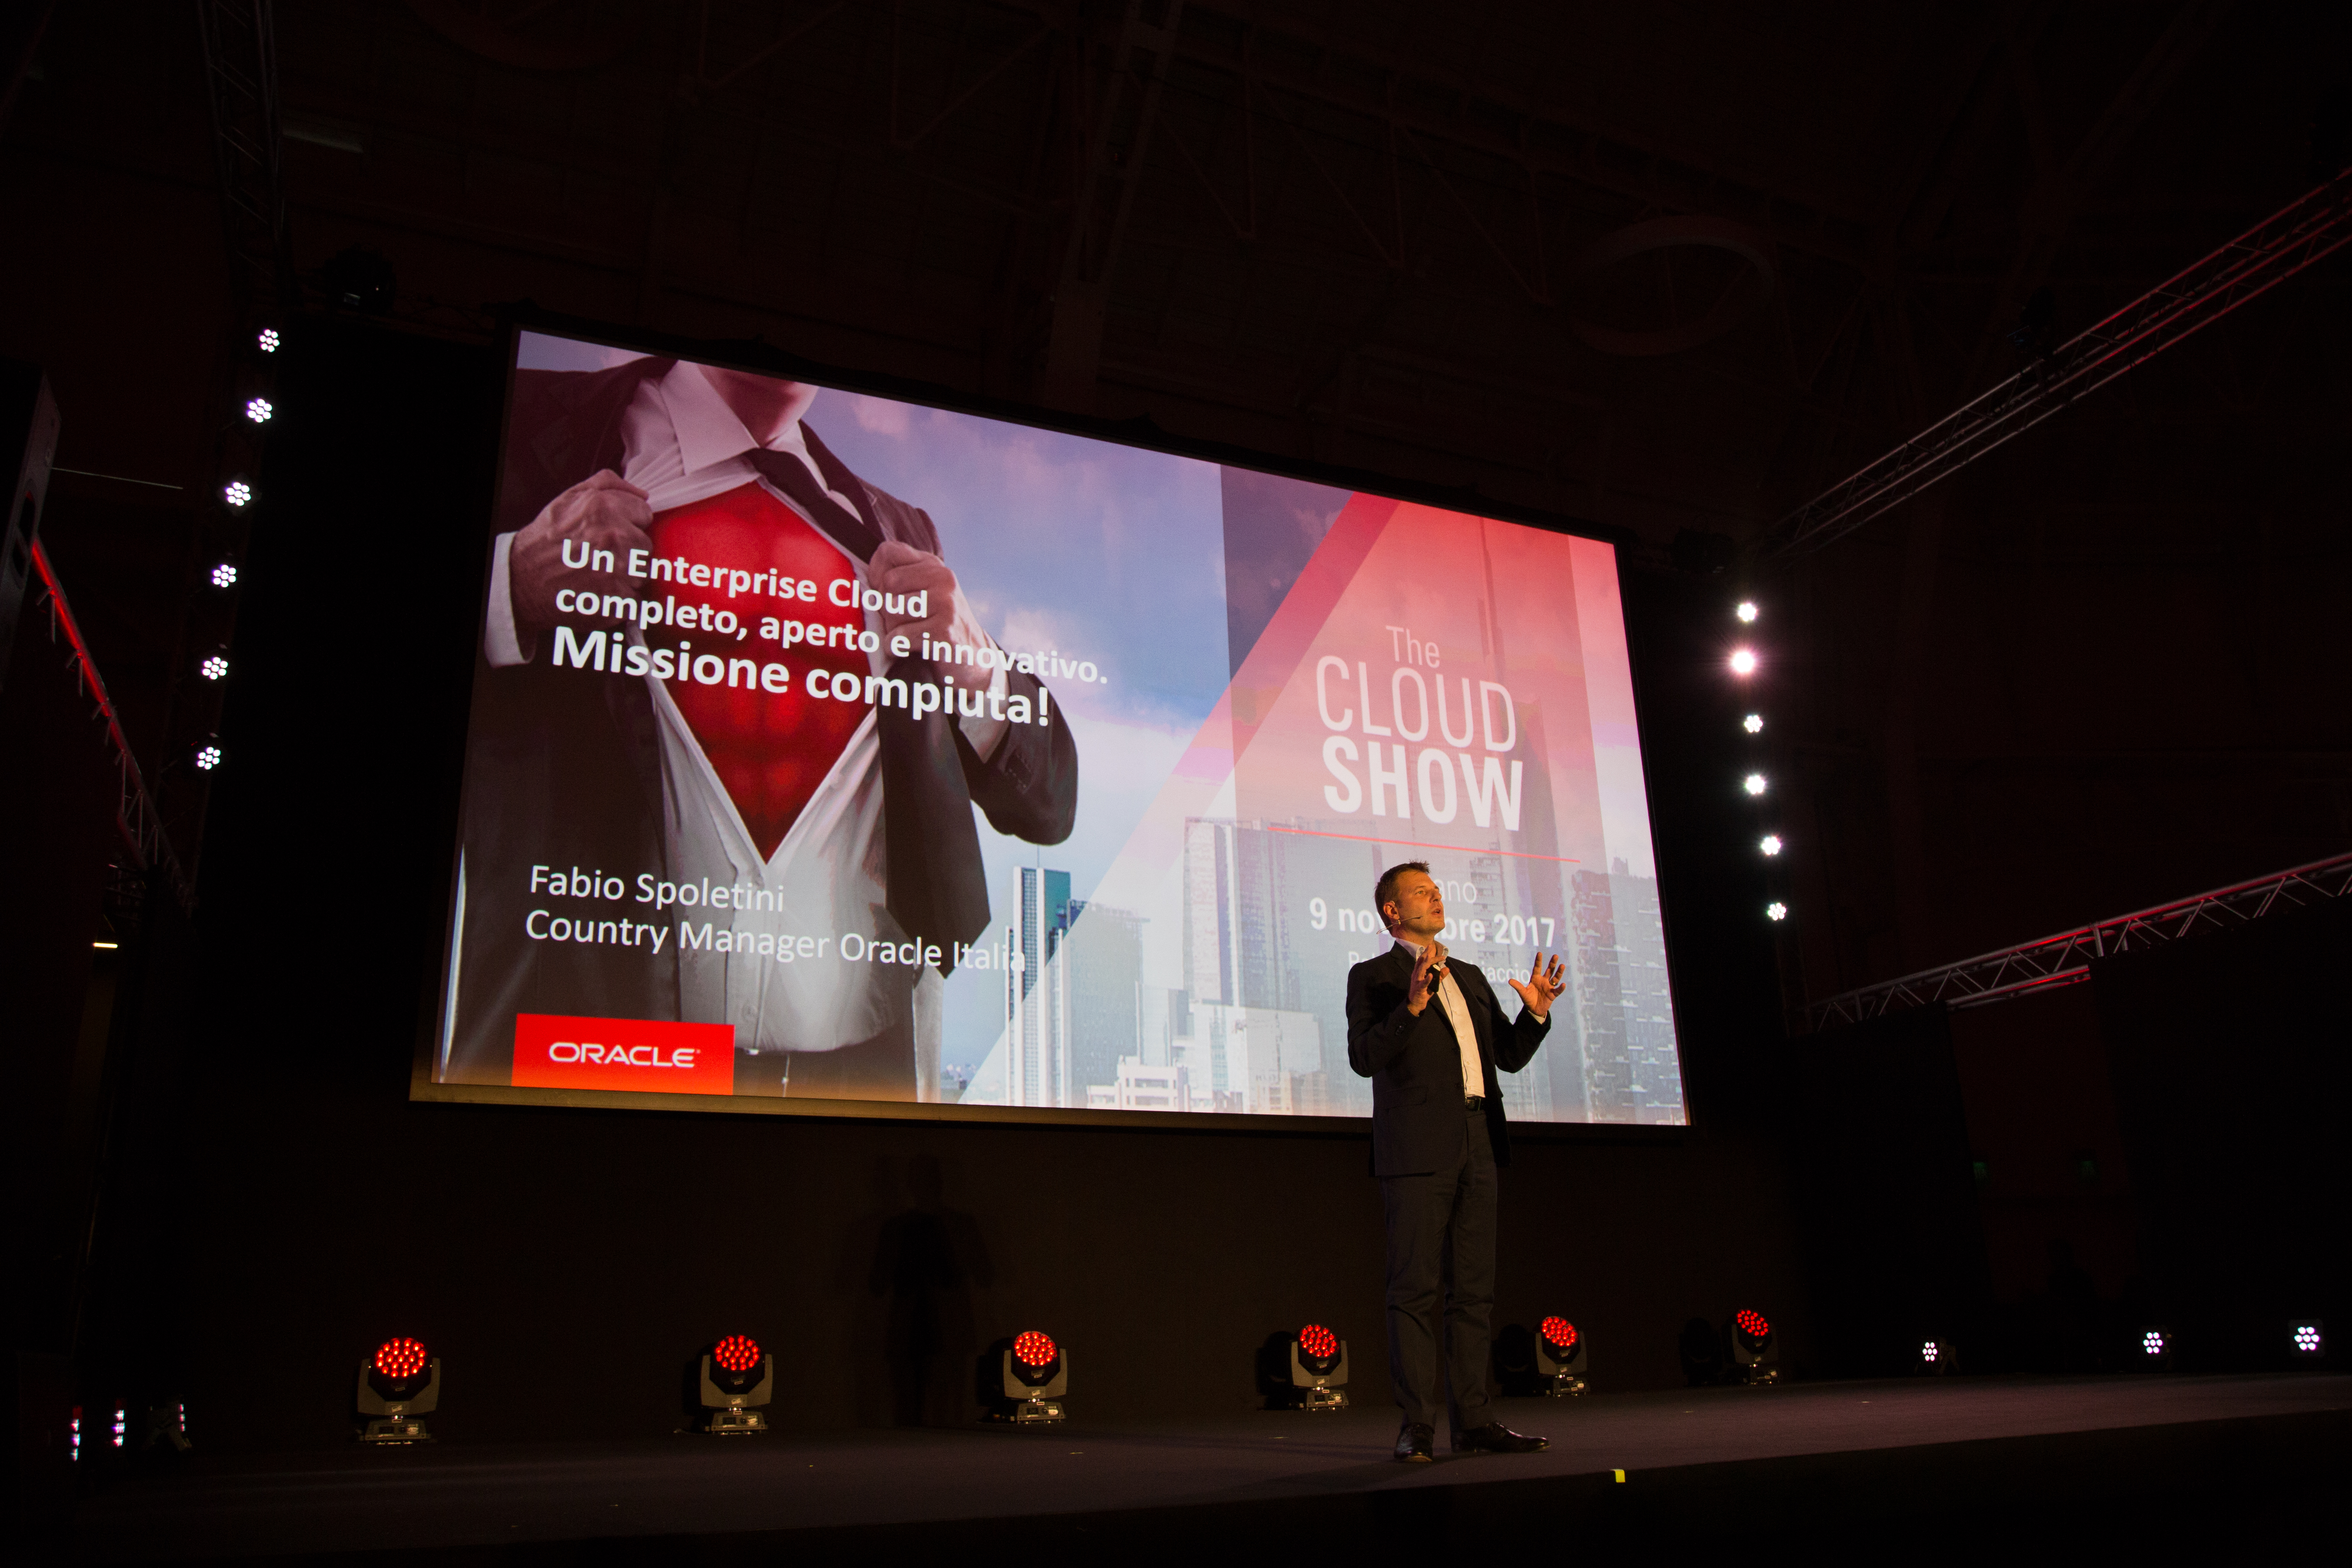 Fabio Spoletini, country manager di Oracle Italia, sul palco dell'Oracle Cloud Show